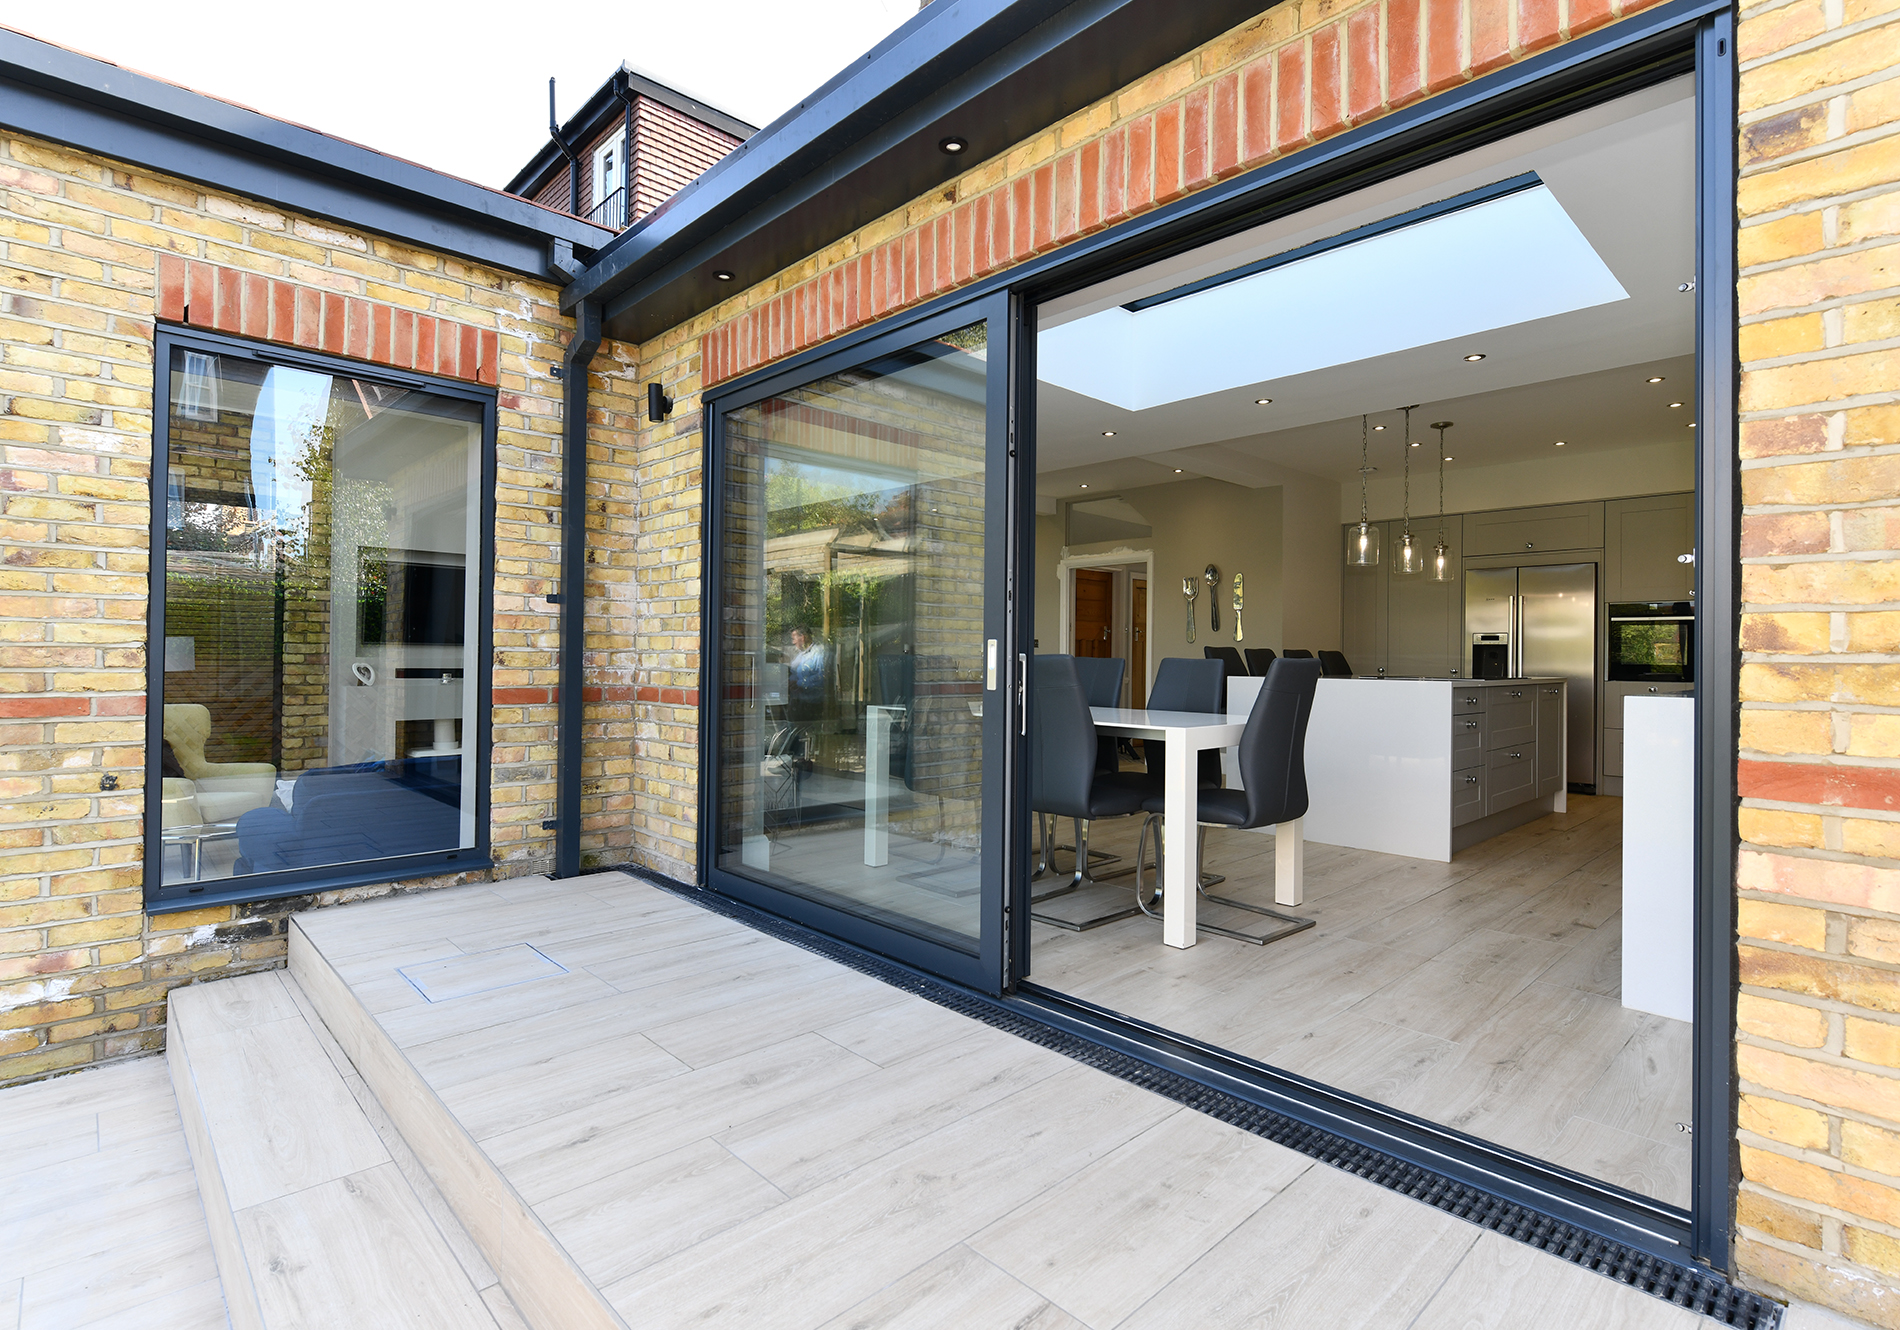 flush threshold with Glide S sliding doors by Exact Architectural Glazing